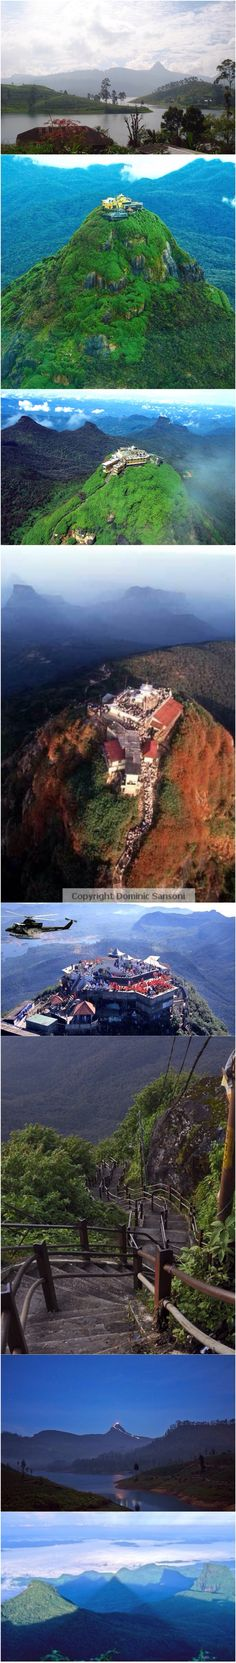 """Sri Pada or Adam's Peak: Lanka's Holy Mountain. Adam's Peak (also Samanalakanda - සමනළ කන්ද """"butterfly mountain"""", is a 2,243 metres (7,359 ft) tall conical mountain located in central Sri Lanka. It is well-known for the """"sacred footprint"""", a 1.8 m rock formation near the summit, in Buddhist tradition held to be the footprint of the Buddha, in Hindu tradition that of Shiva, in Christian tradition that of St. Thomas, and in Muslim tradition that of Adam."""